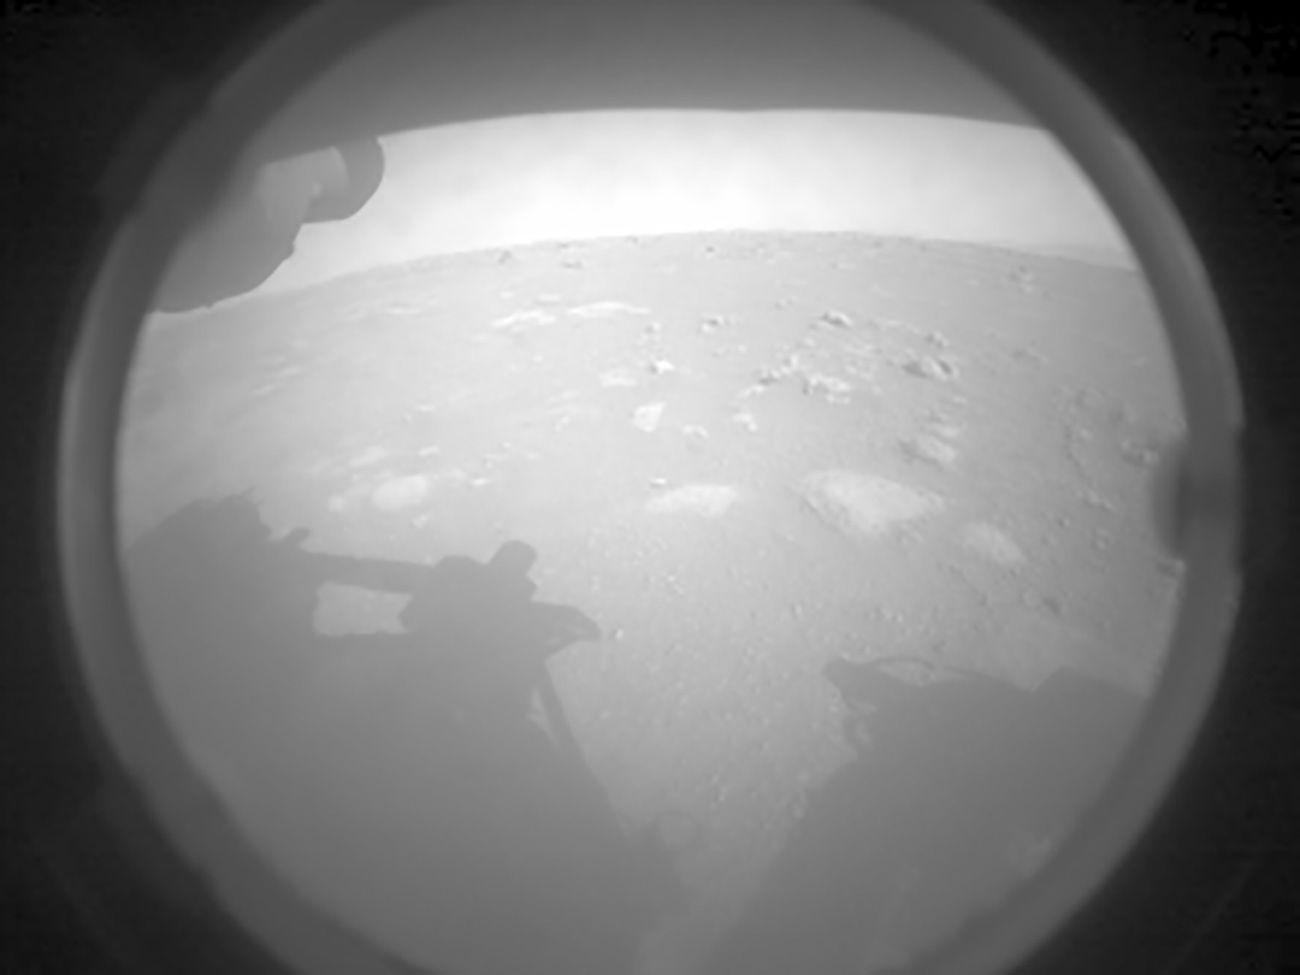 NASA's Mars Perseverance rover acquired this image of the area in front of it using its onboard Front Left Hazard Avoidance Camera A.